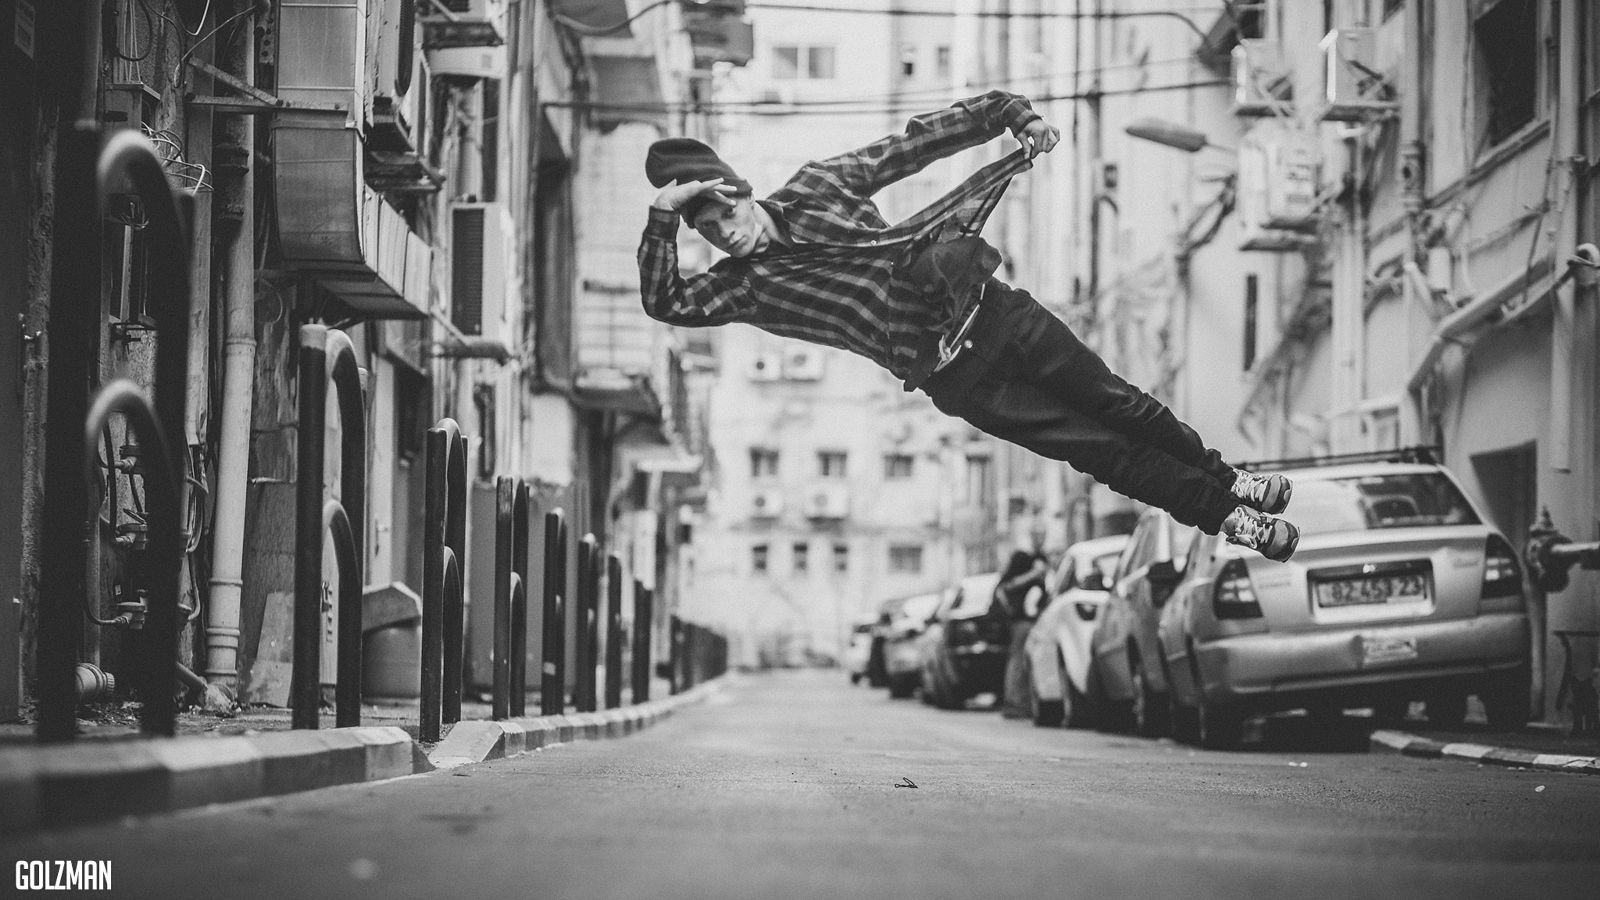 Bboy Wallpaper Full Hd 500px Blog 187 187 Best Of Breakdance On 500px 35 Kickass